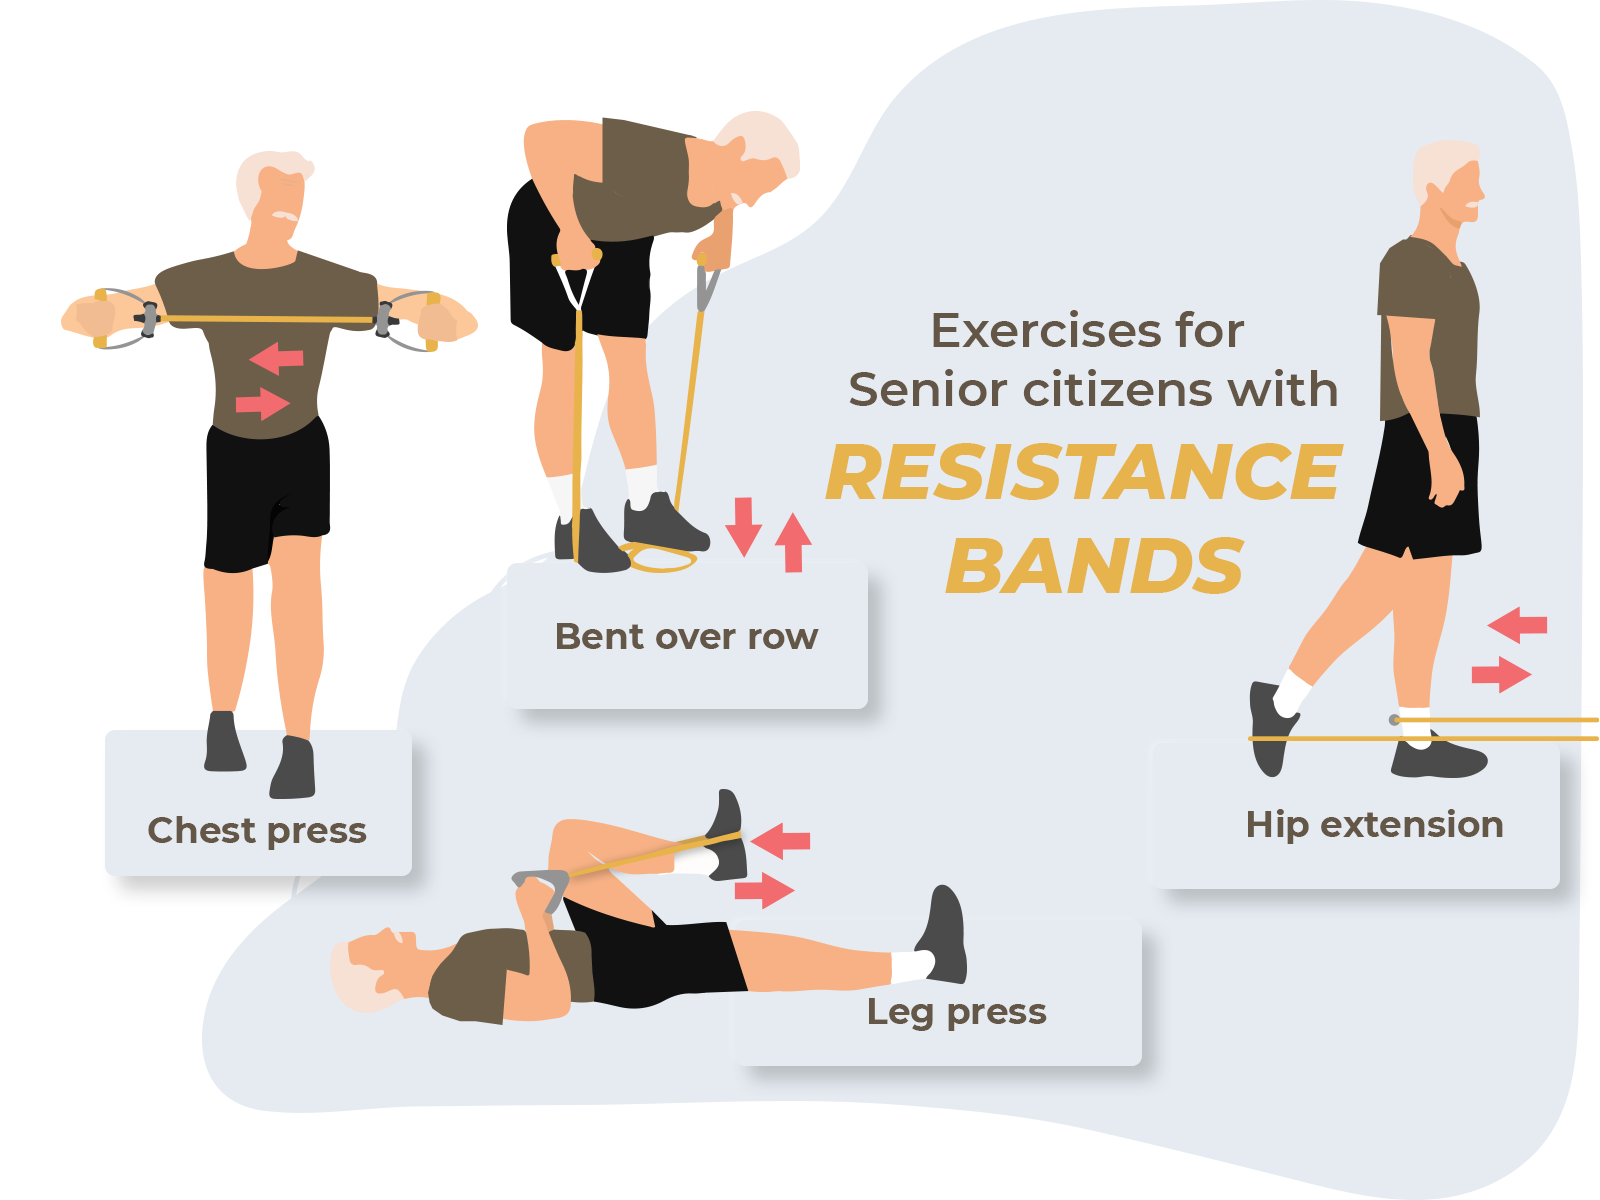 a few exercises that are especially great for seniors